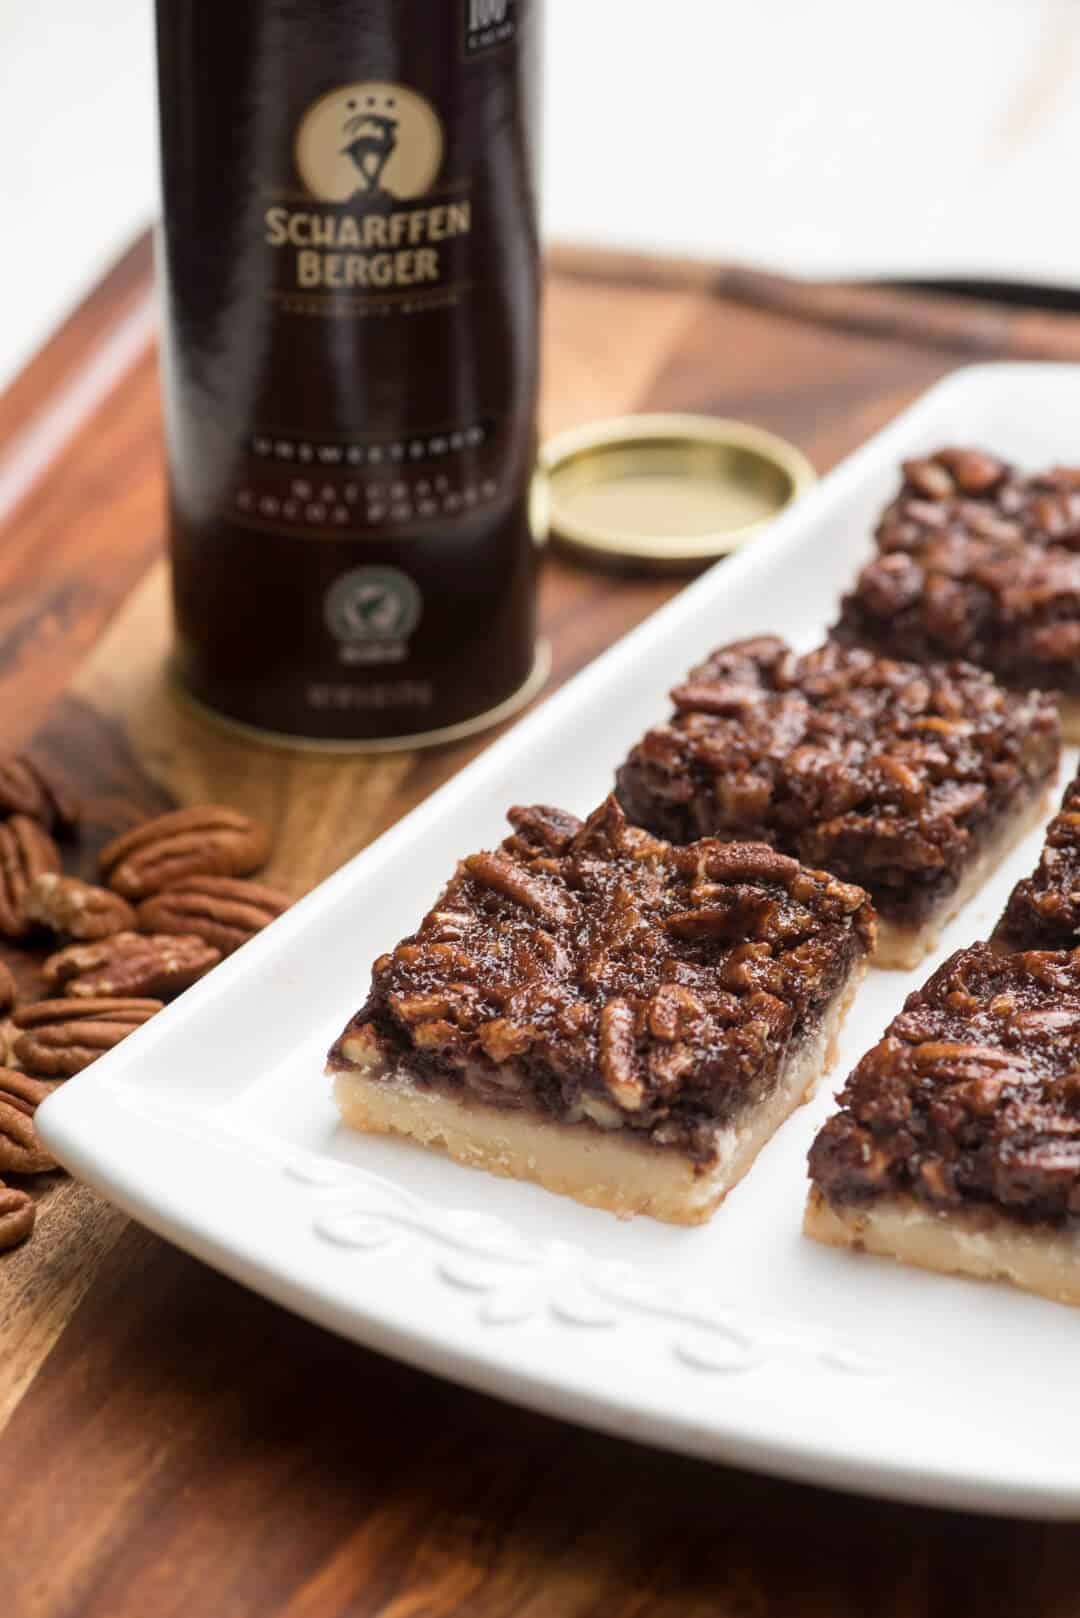 These Chocolate Bourbon Pecan Pie Bars have a shortbread crust topped with a gooey, chocolaty, bourbon-spiked pecan topping that is downright heavenly.